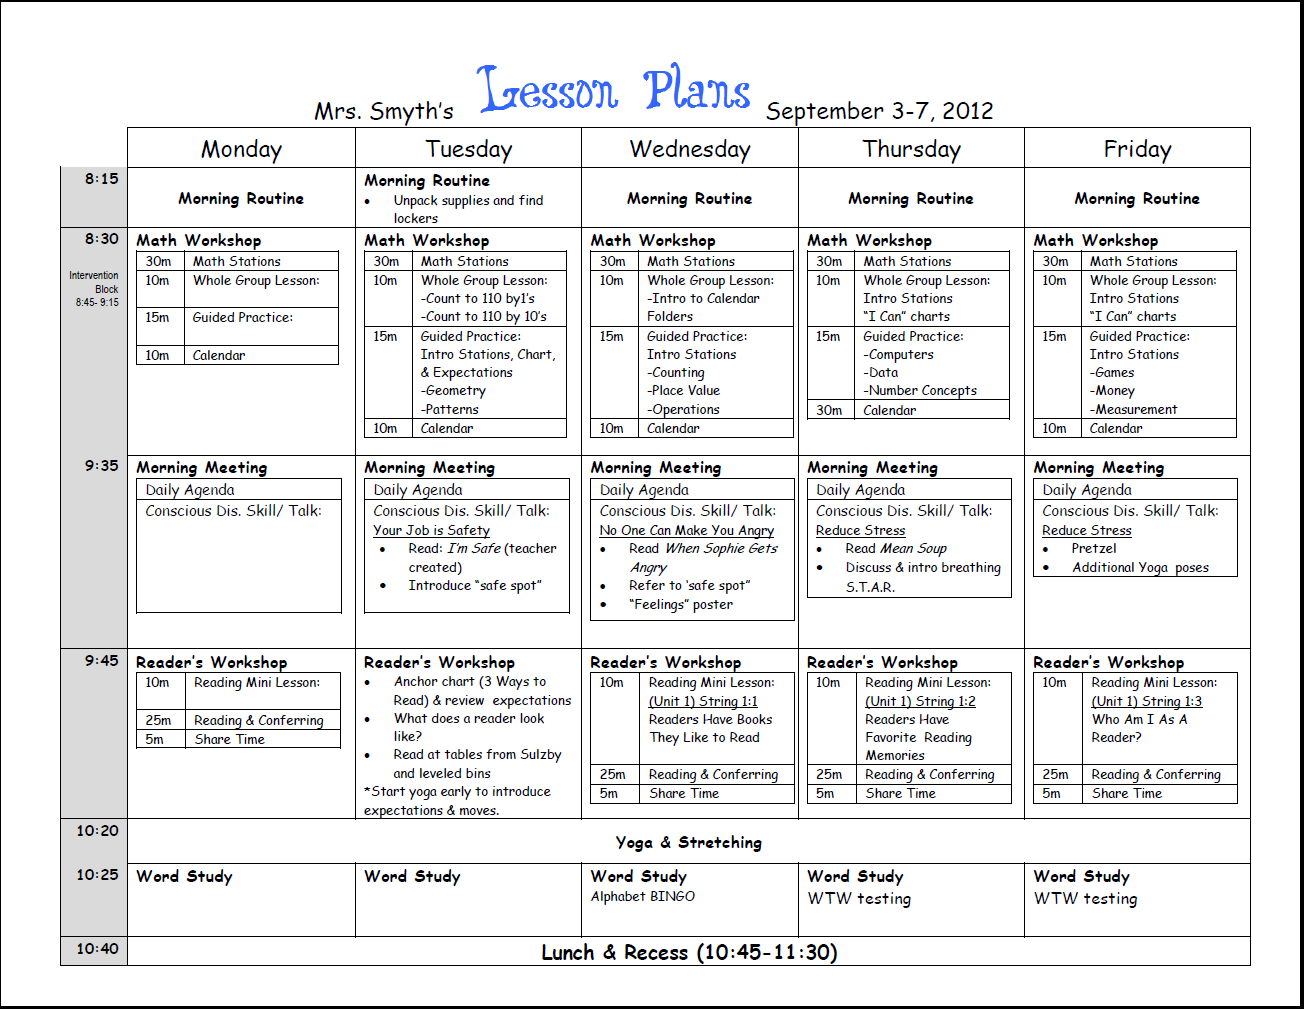 007 Weekly Lesson Plan Template Dreaded Templates Free Printable - Free Printable Preschool Lesson Plans